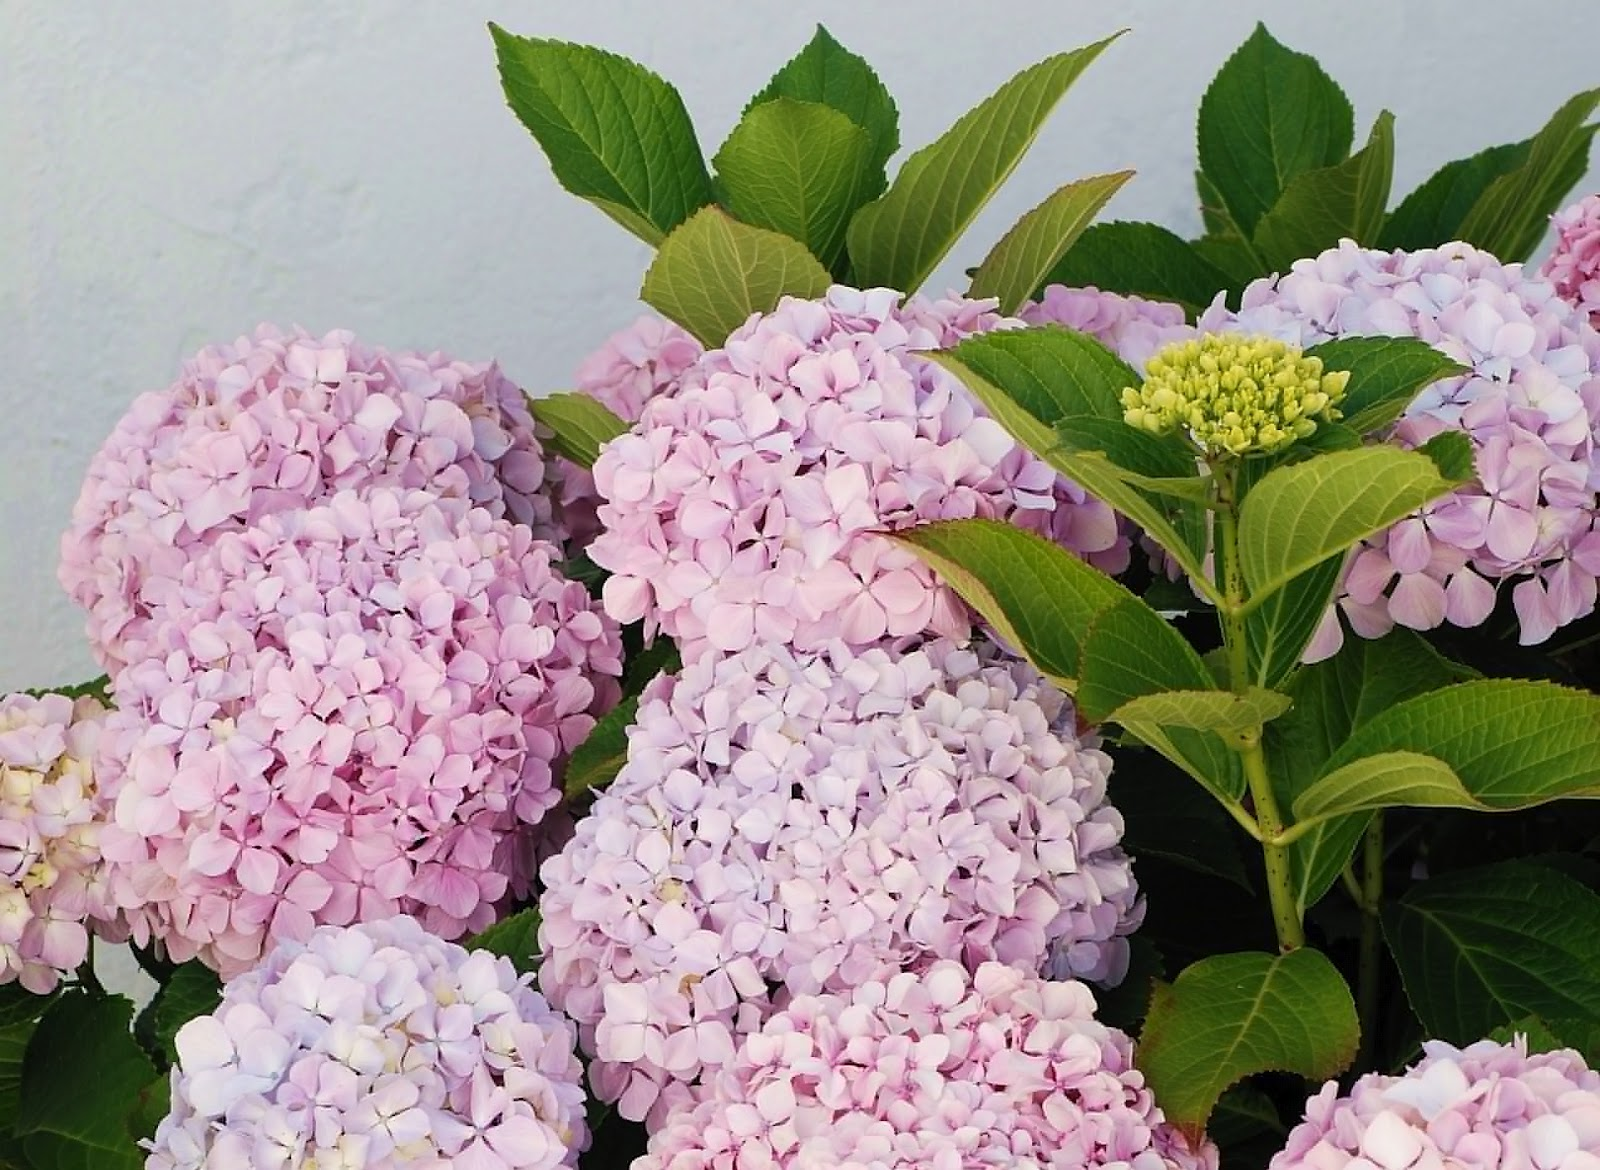 Hydrangea Popular Ornamental Plants on 4 types of kidney stones